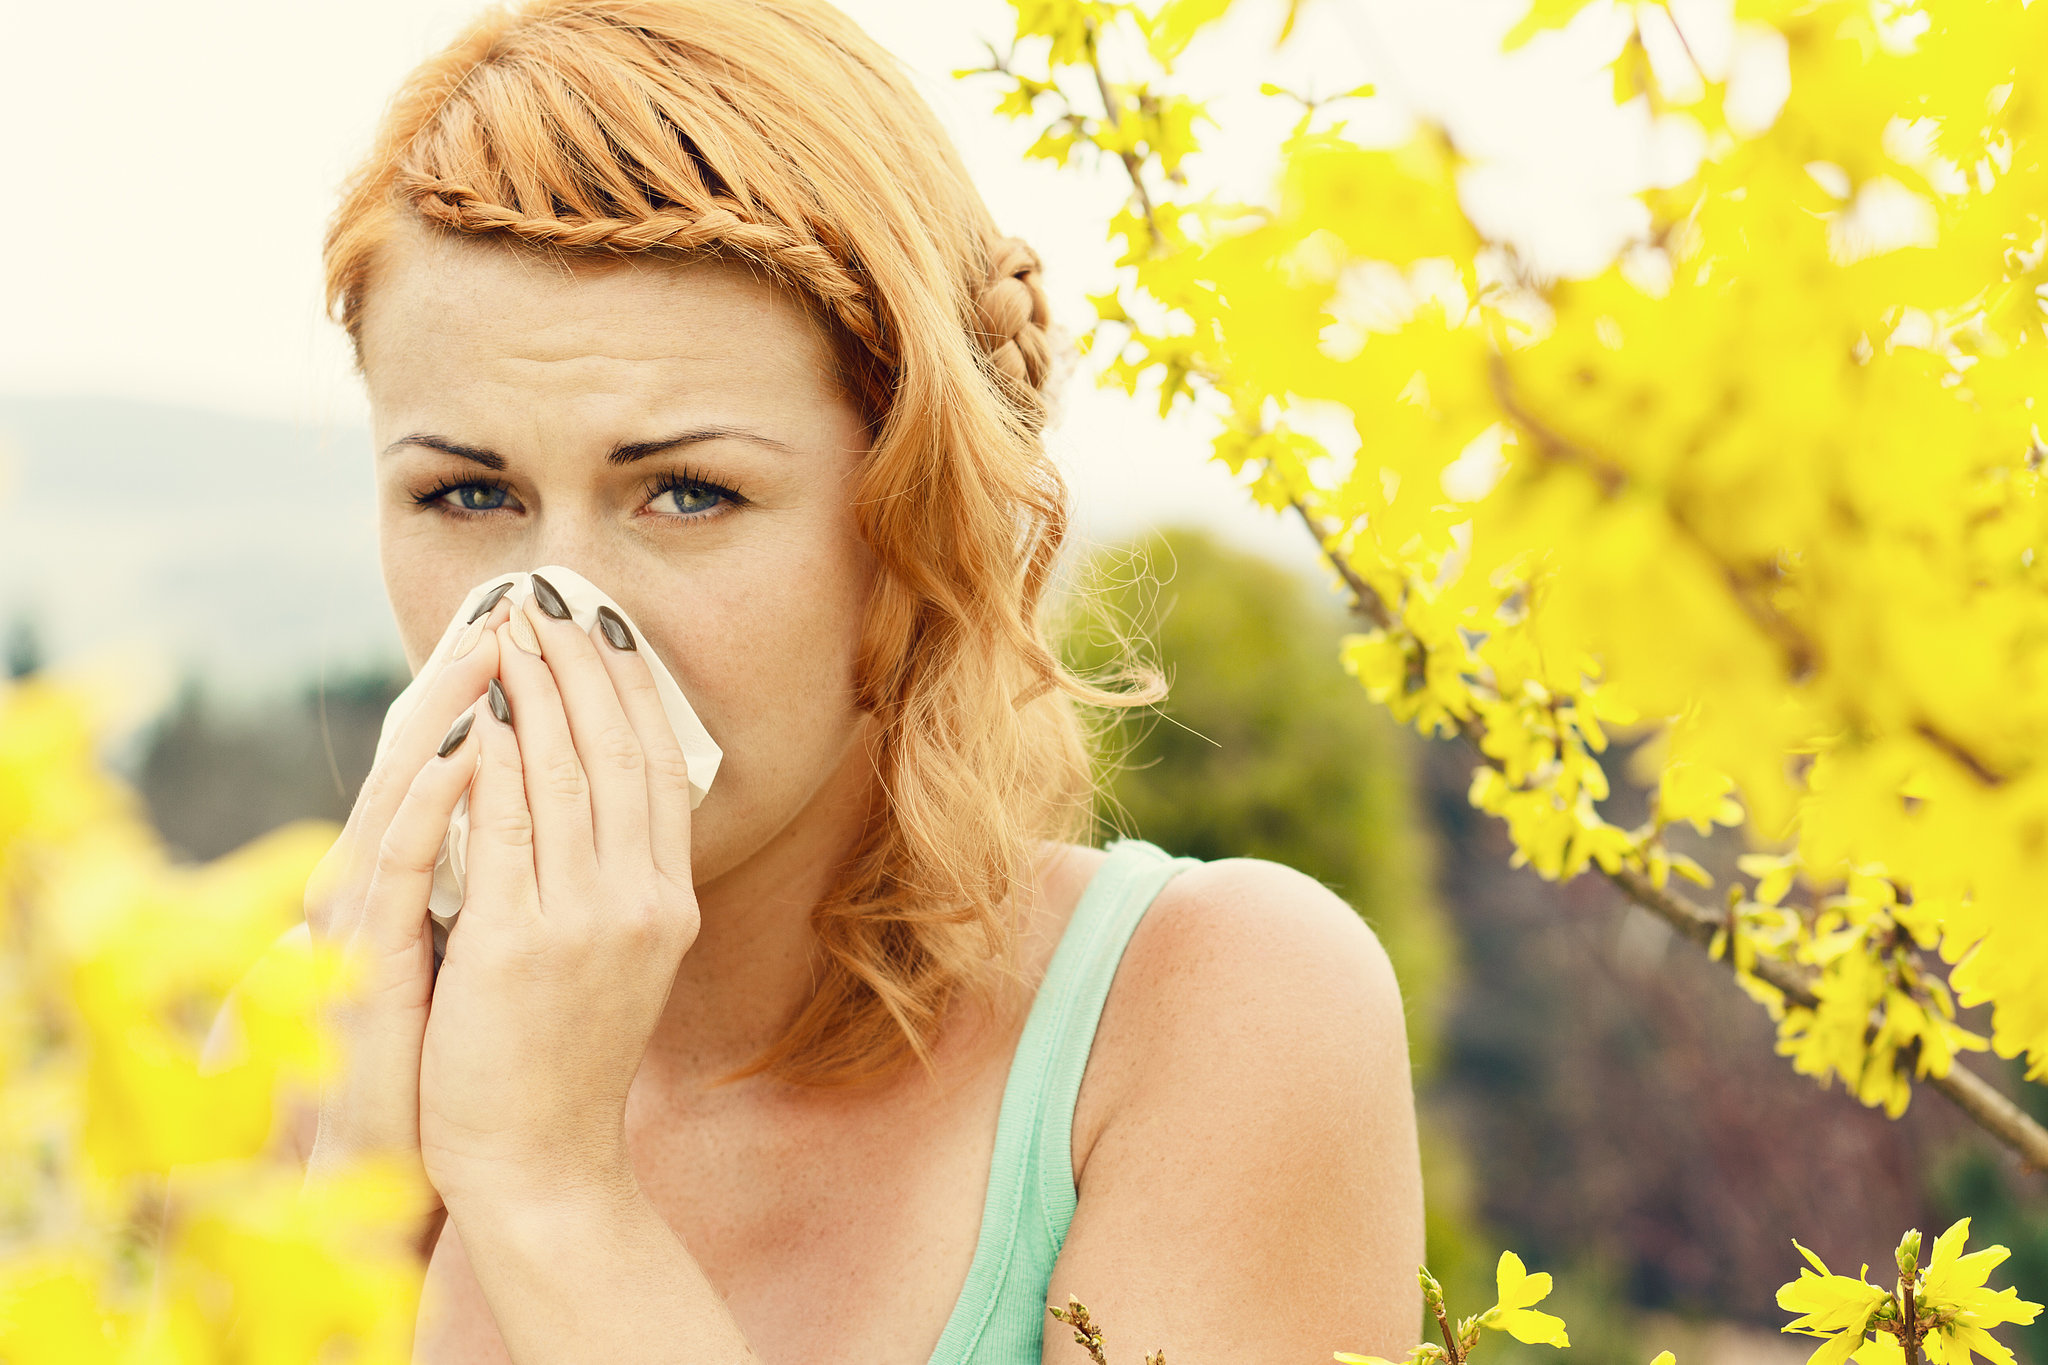 Our Florida lifestyle has us outdoors constantly. It is nearly impossible to avoid most allergens.